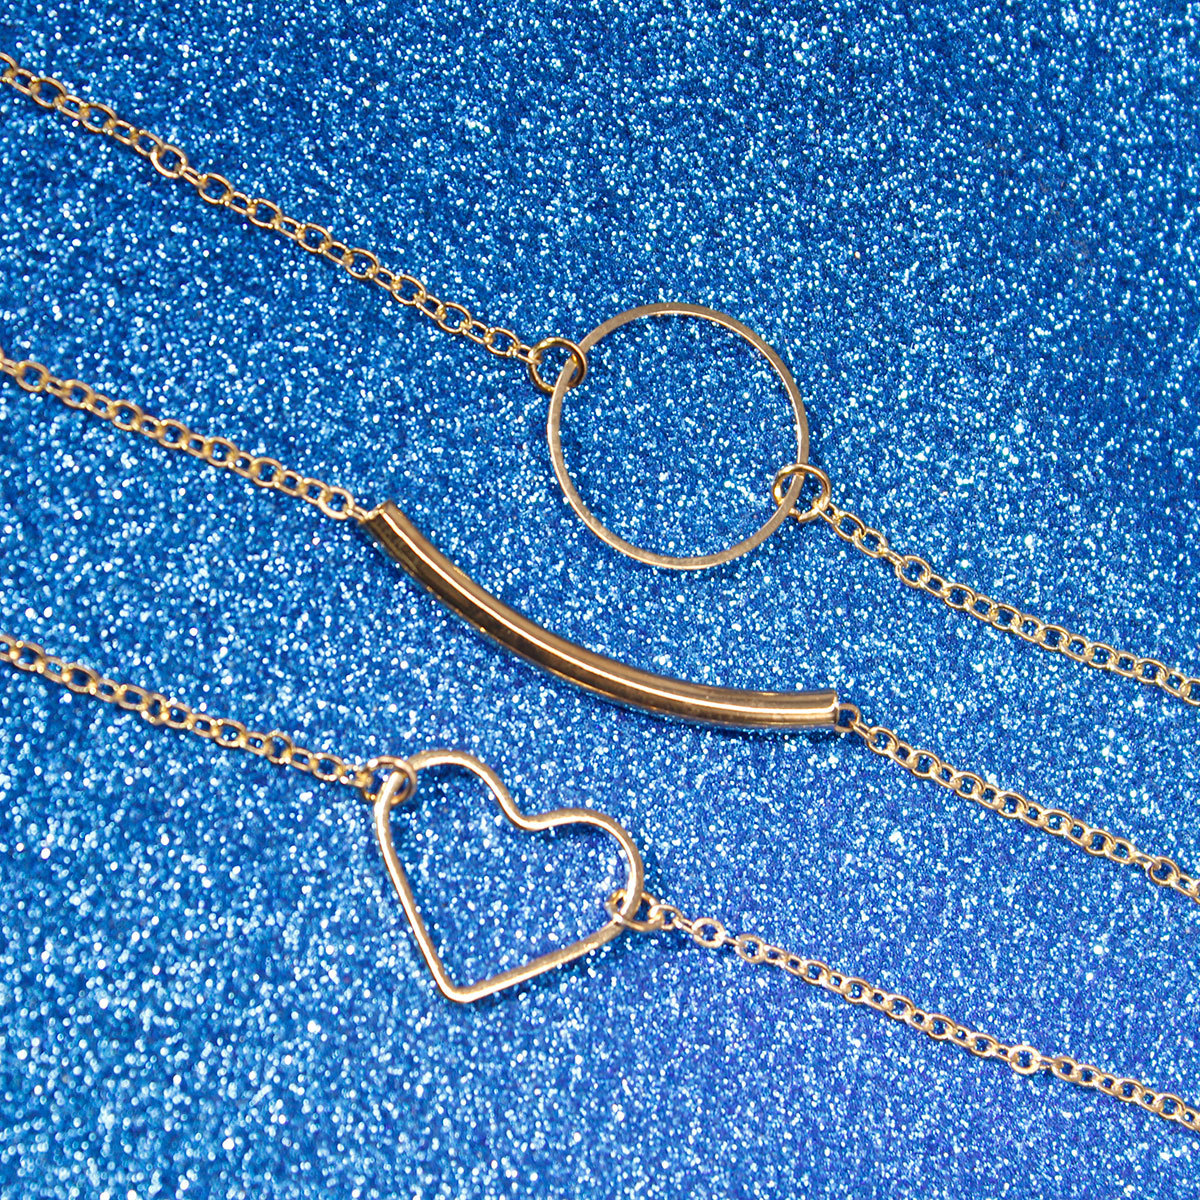 New Simple Love Heart Circle Clavicle Necklace Women Multilayer Handmade Chain Choker Necklace XL353 in Pendant Necklaces from Jewelry Accessories